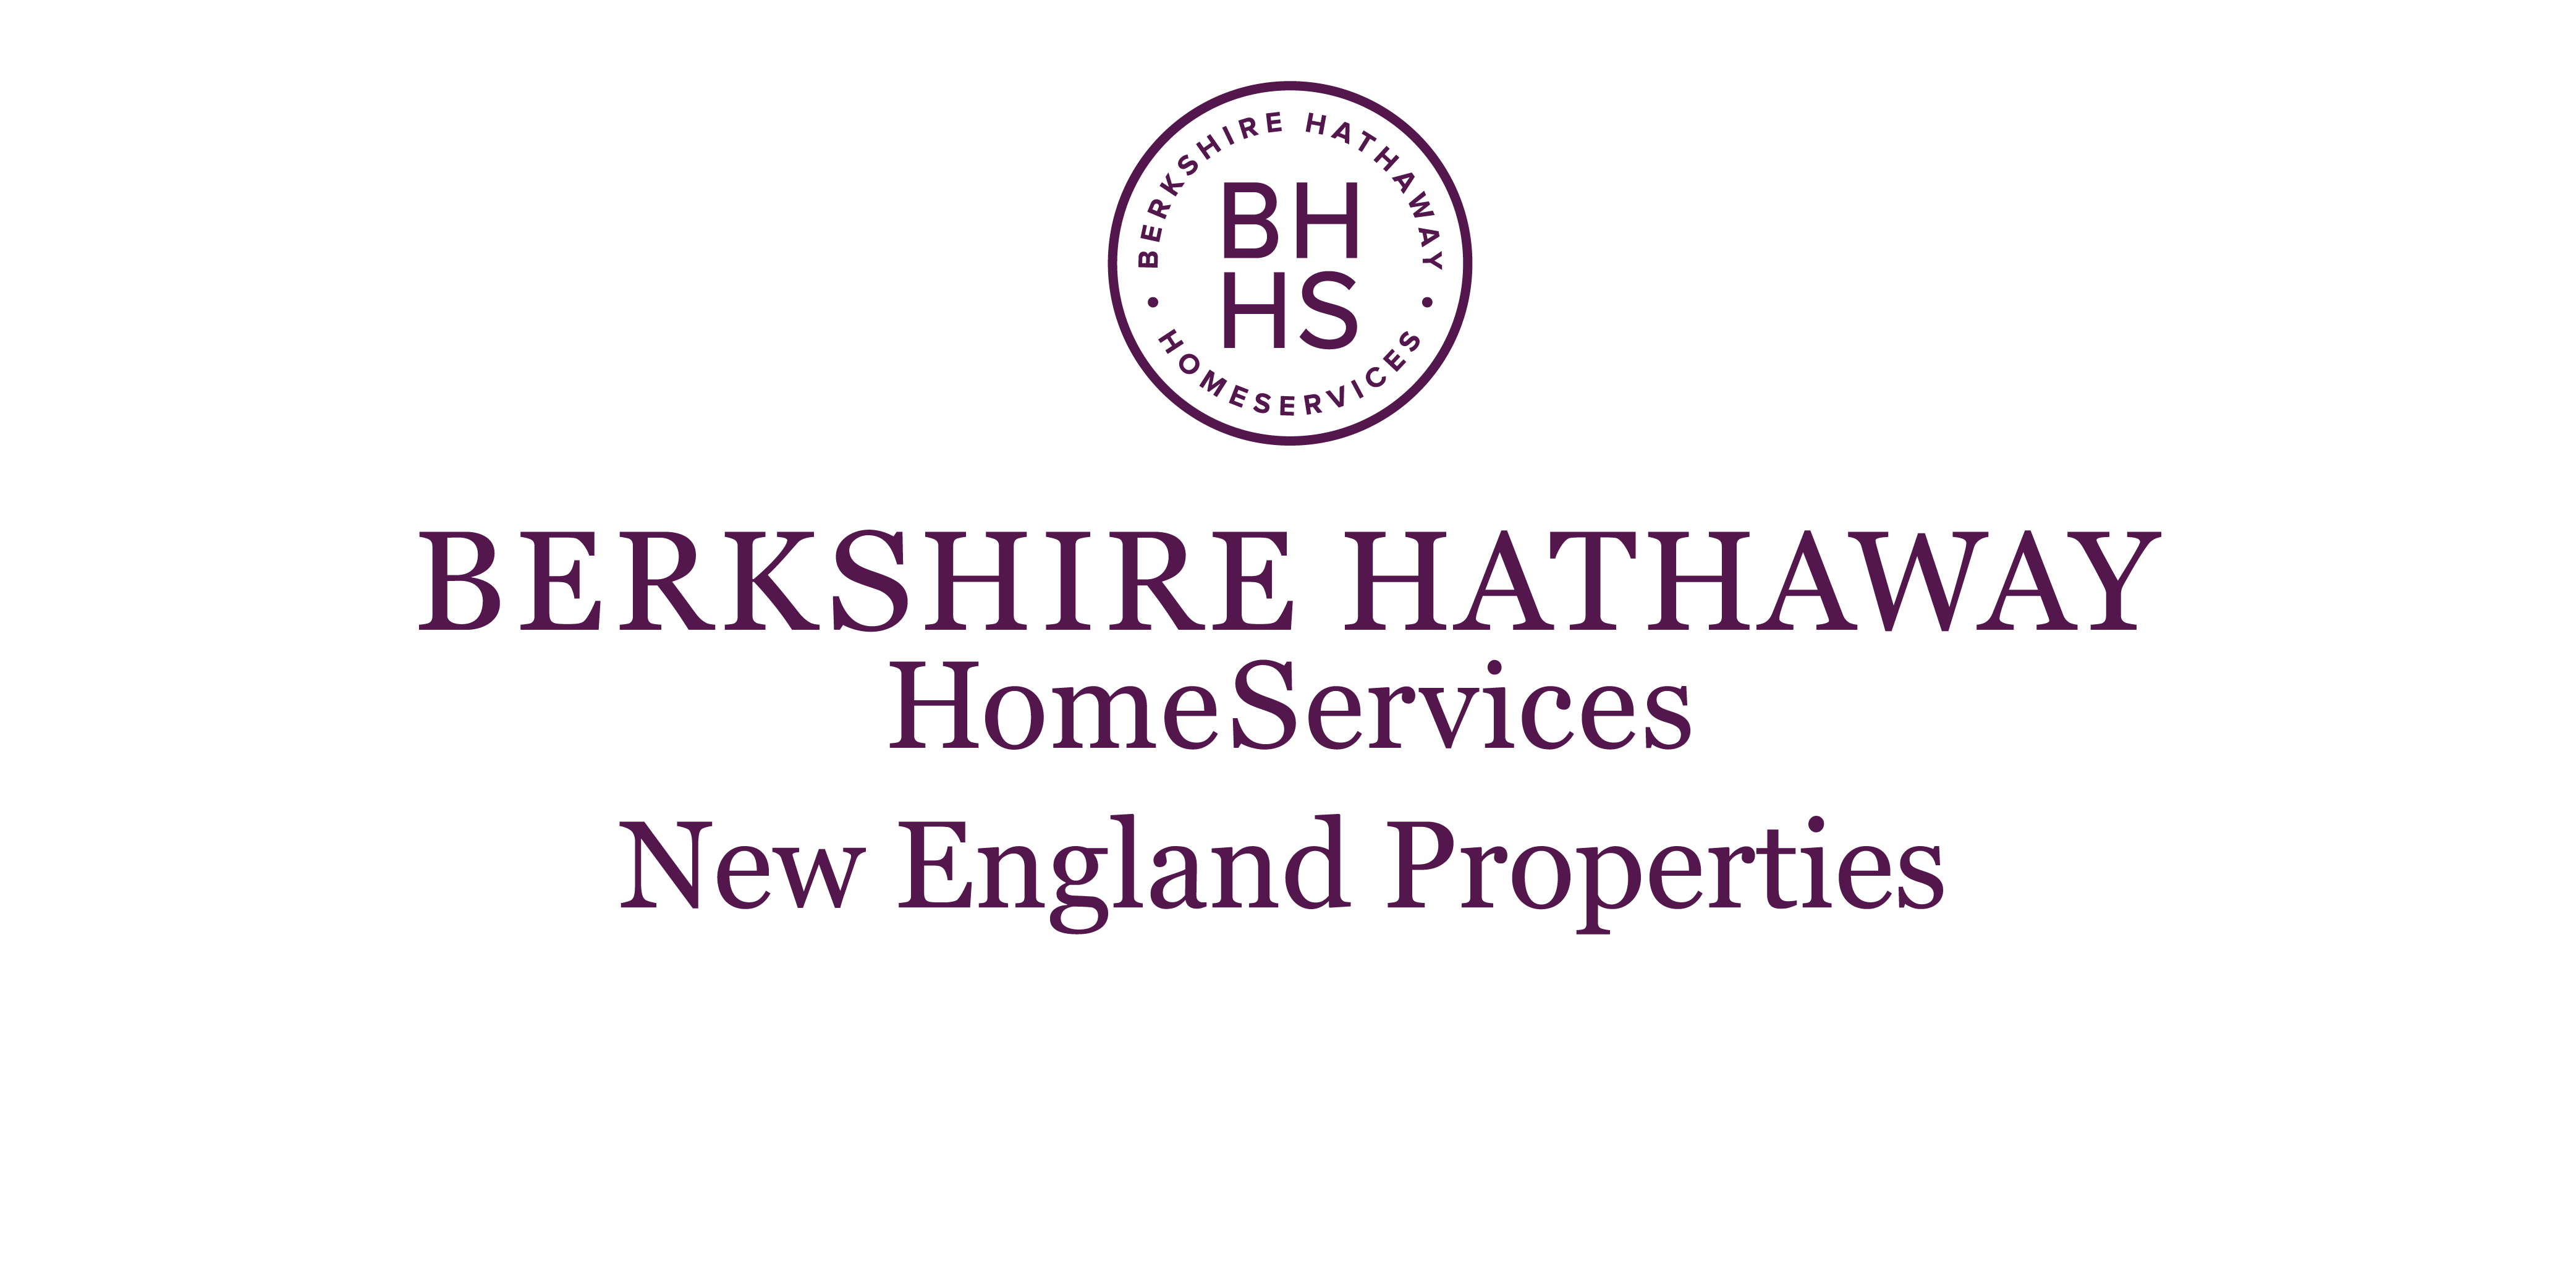 Berkshire Hathaway HomeServices New England Properties logo